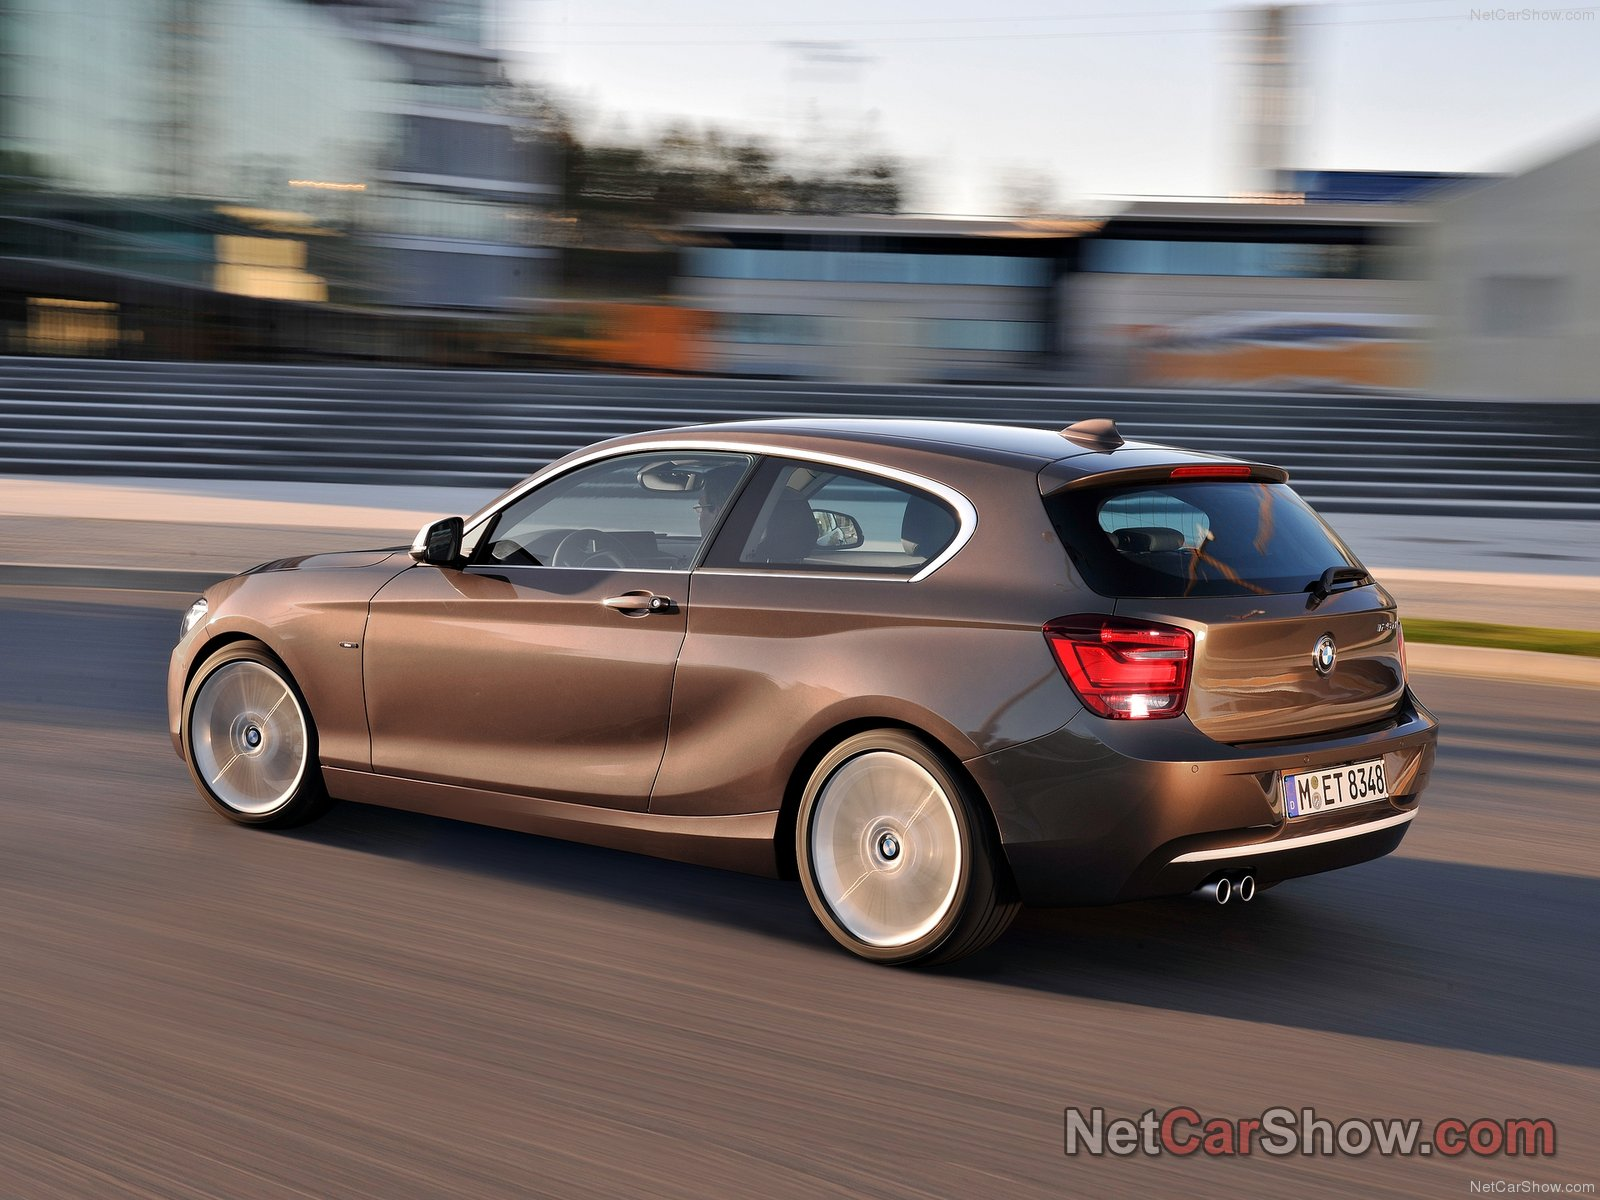 bmw 1 series 3 door e81 photos photogallery with 28 pics. Black Bedroom Furniture Sets. Home Design Ideas